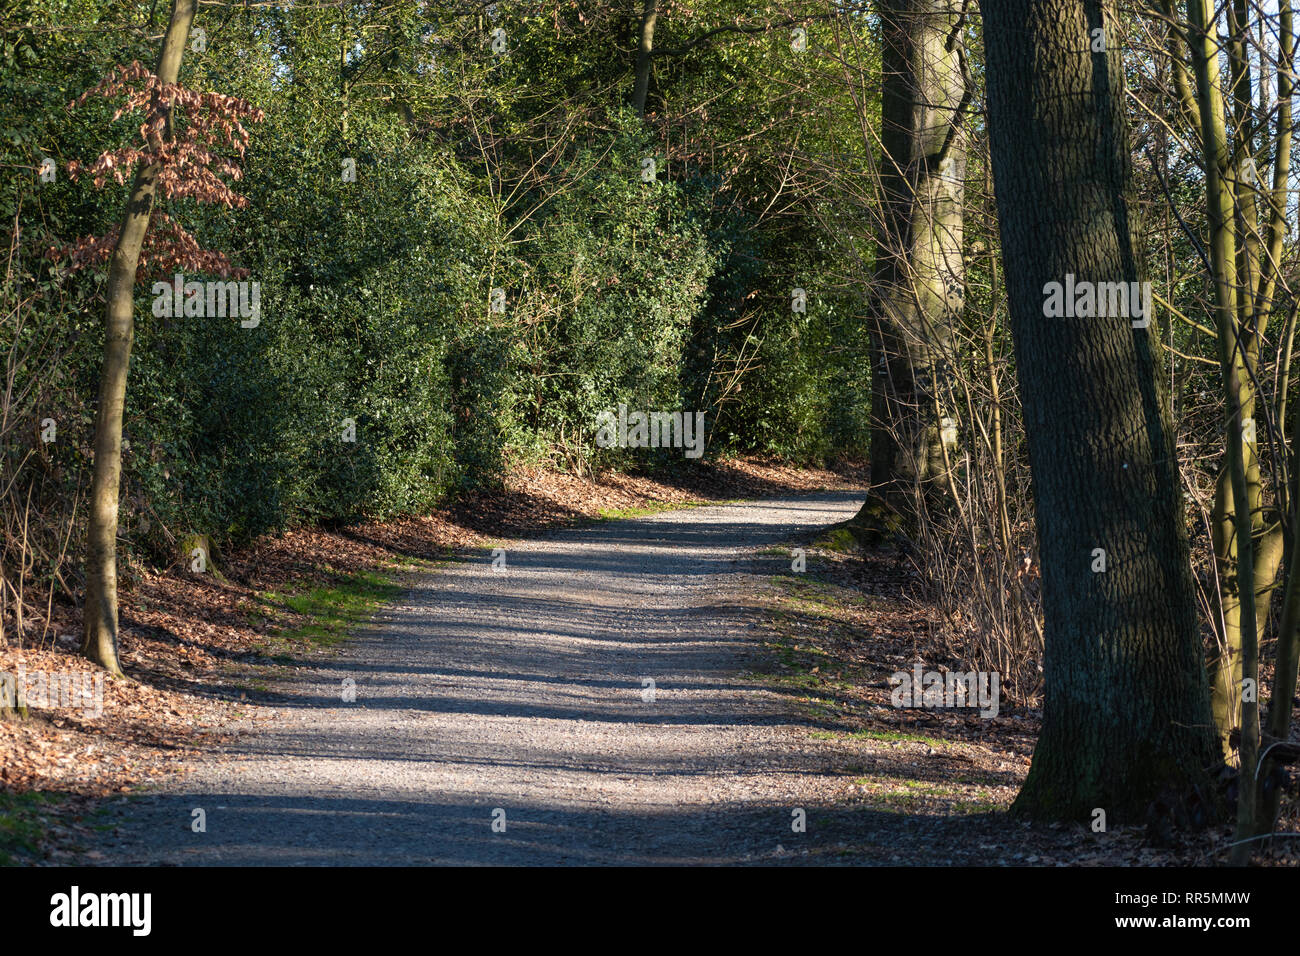 Bending gravel trail in a spring forest - Stock Image